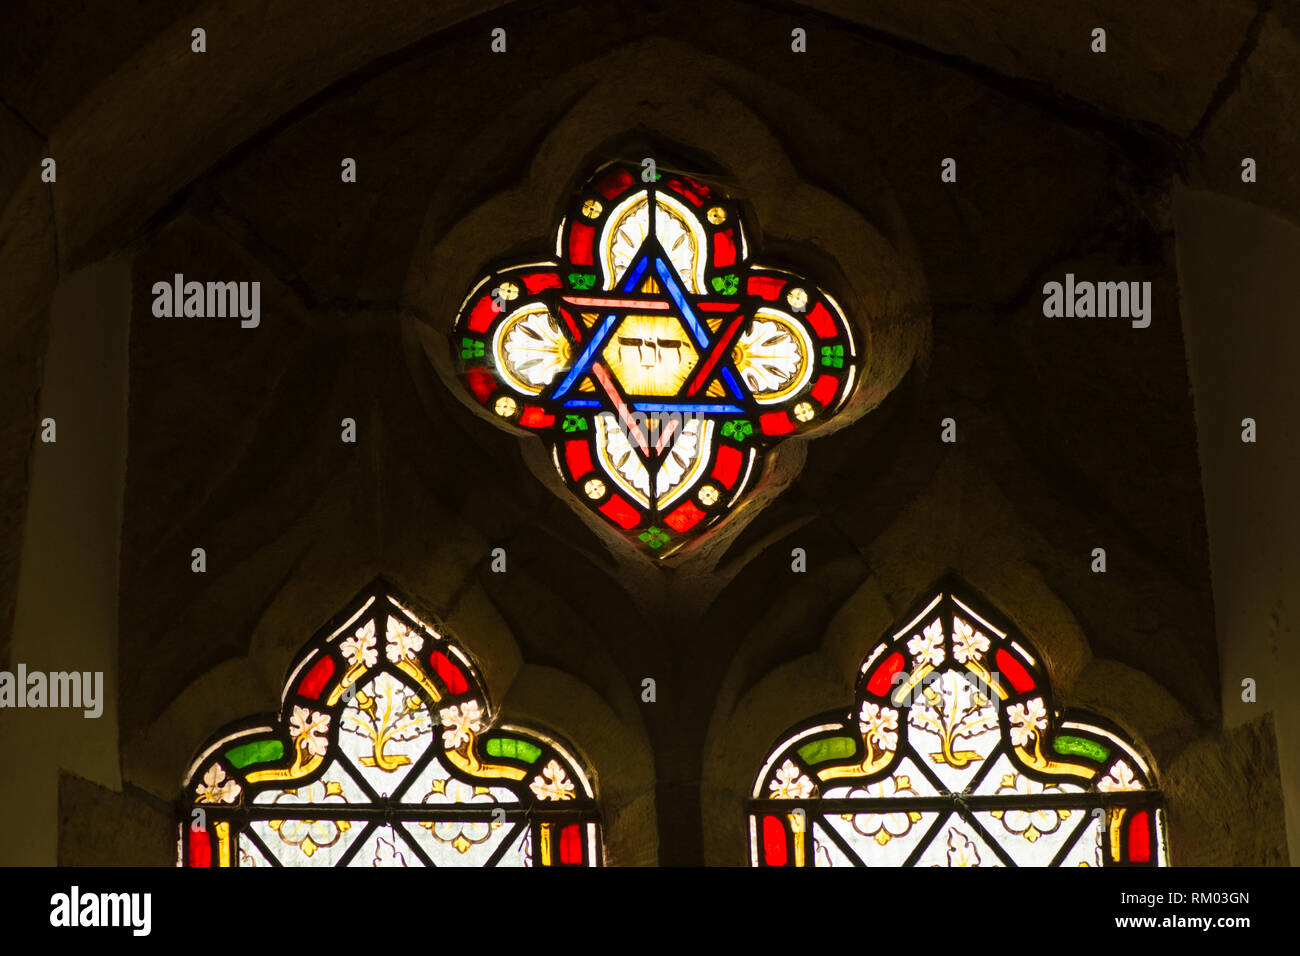 Yhwh Stock Photos & Yhwh Stock Images - Alamy